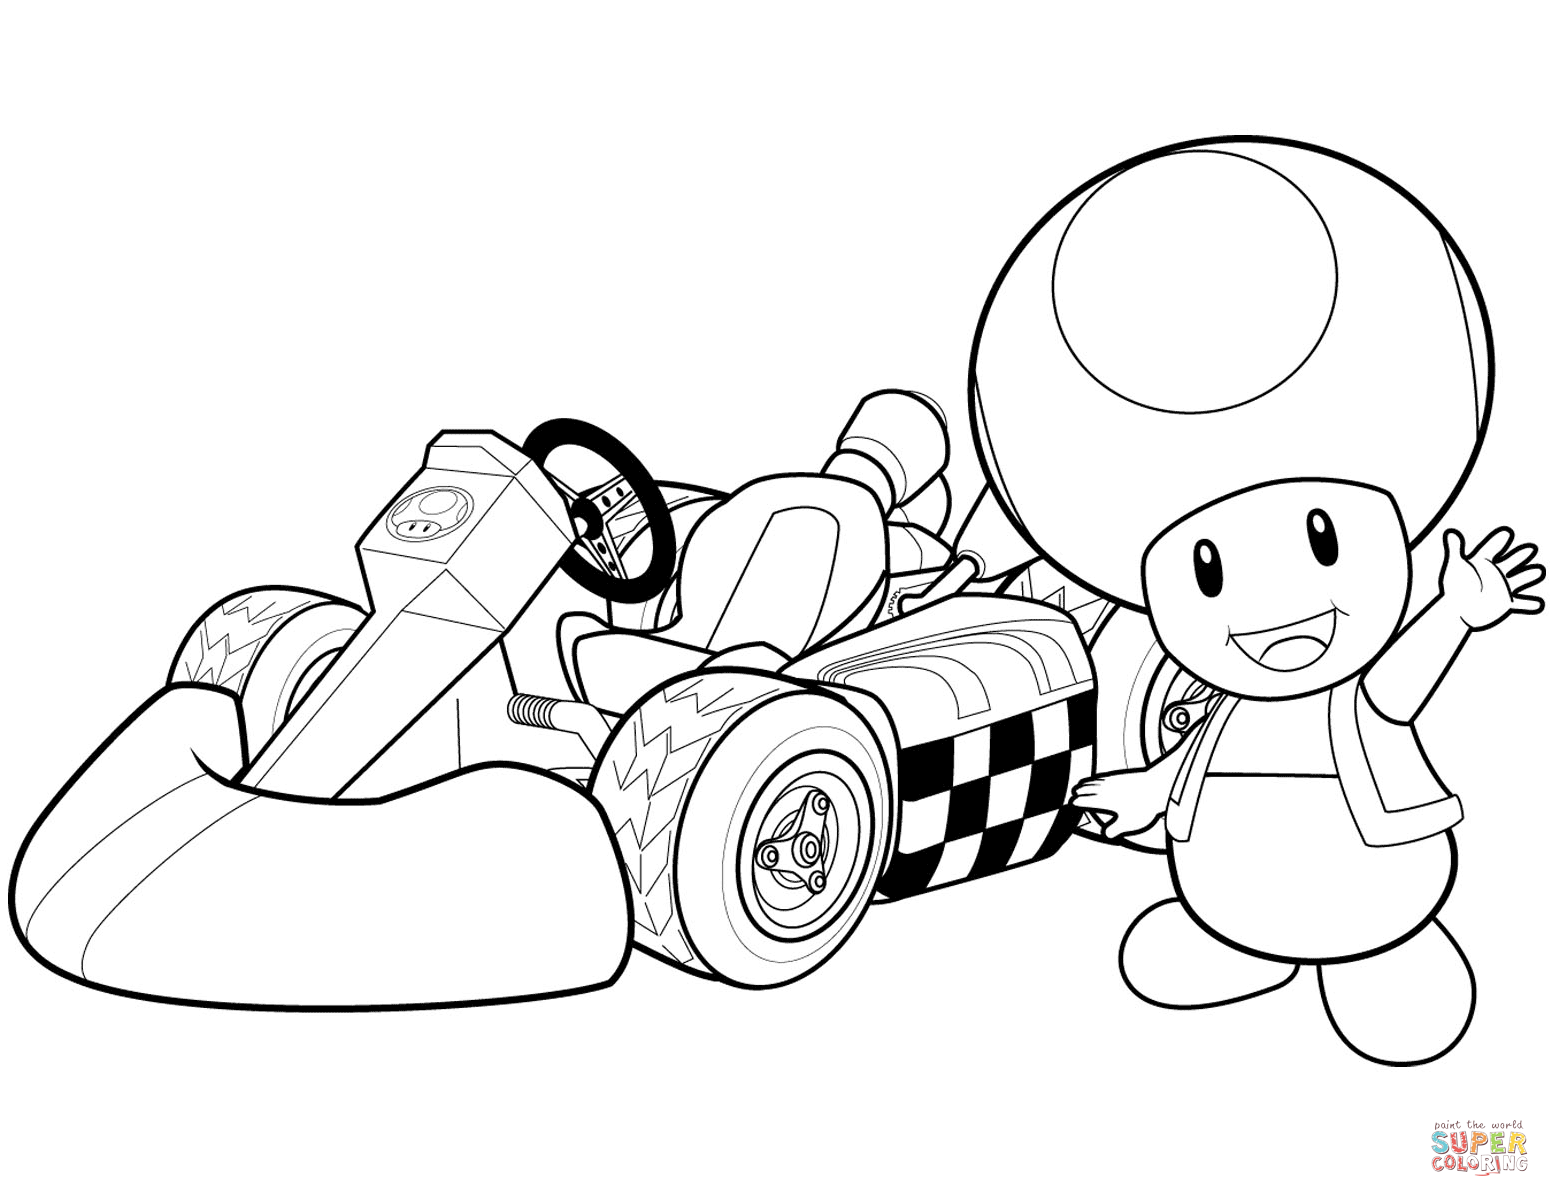 1550x1197 Mario Kart Coloring Pages Toad Wii Page Printable For Kids Photo